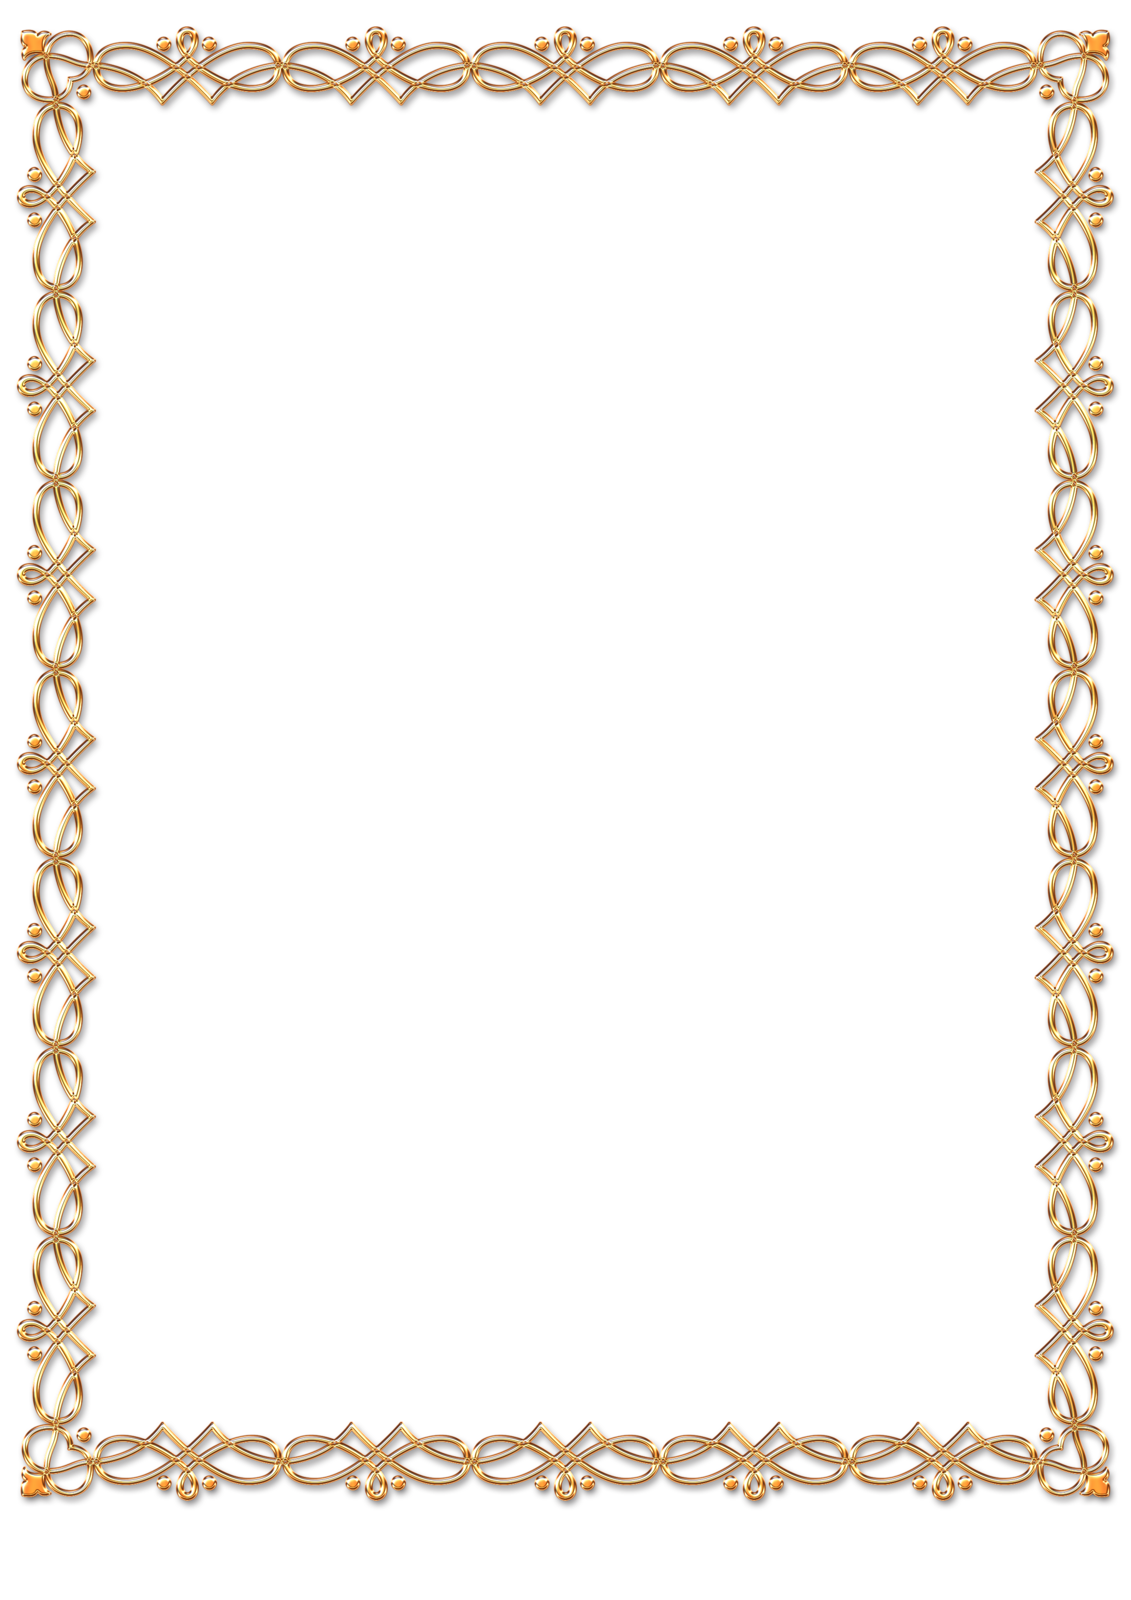 Marcos Decorativos Pared 02 Png Frame Pinterest Marcos Marcos Decorativos Y